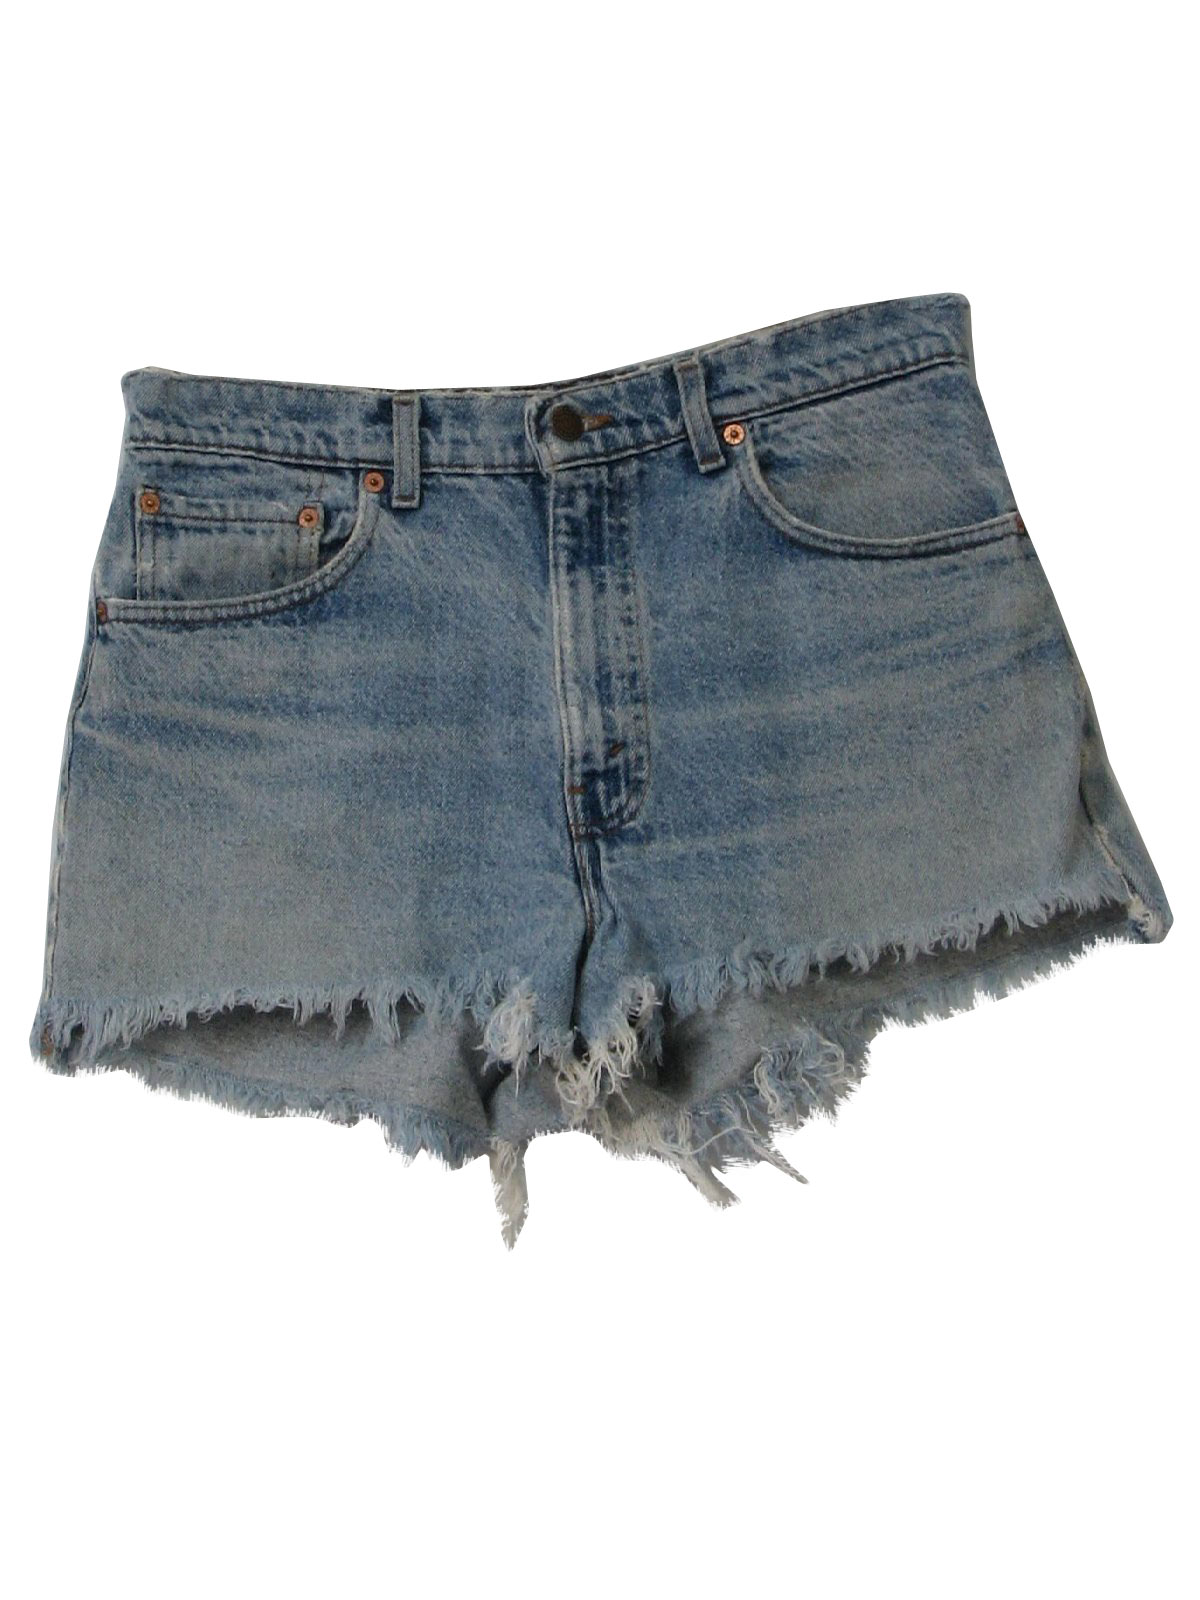 80's Vintage Shorts: 80s -Levis - Mens really well worn ...